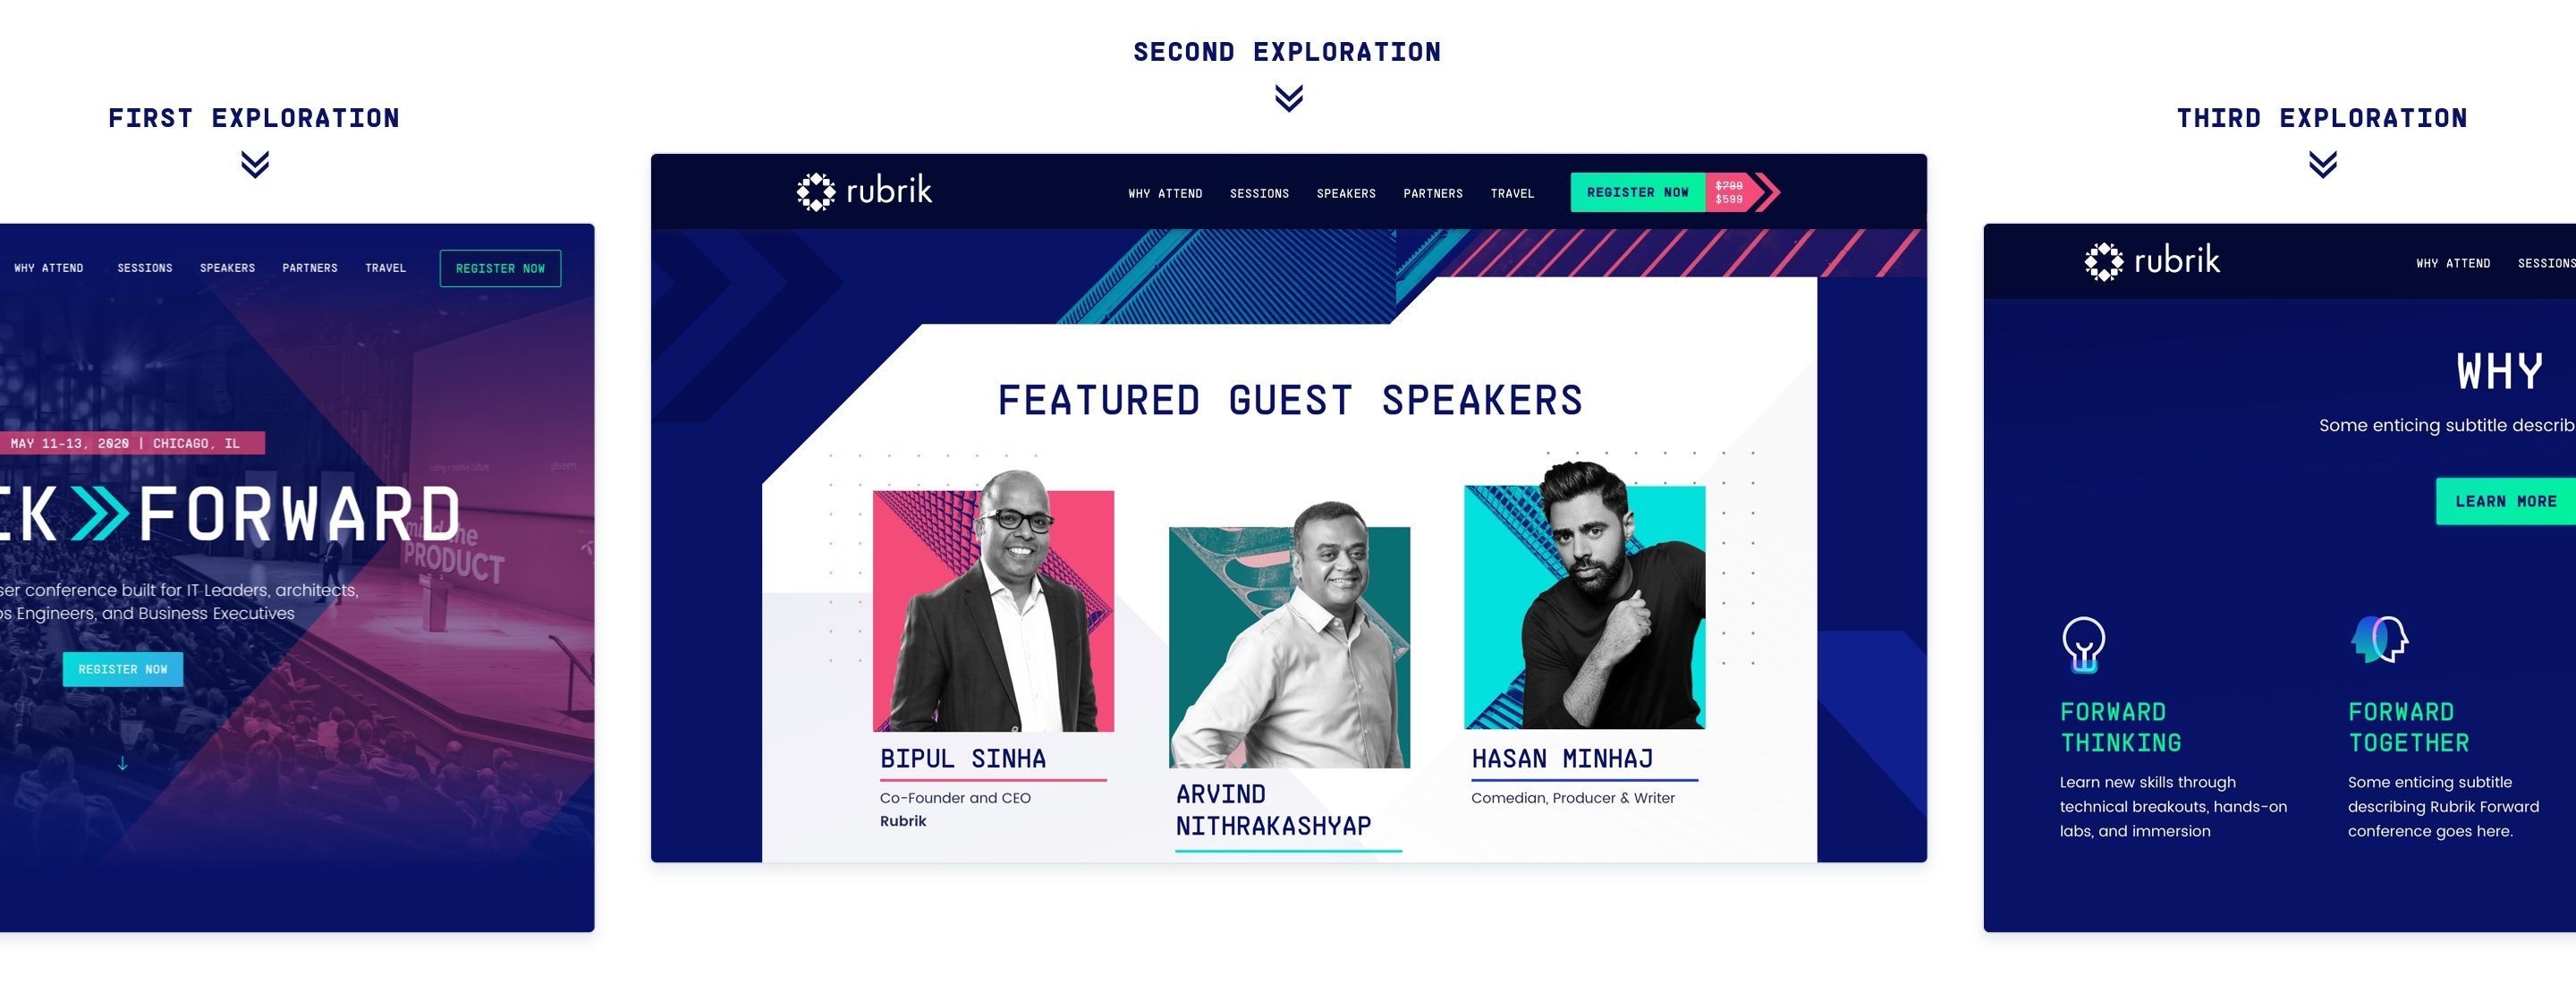 rubrik forward digital summit early explorations of the look and feel